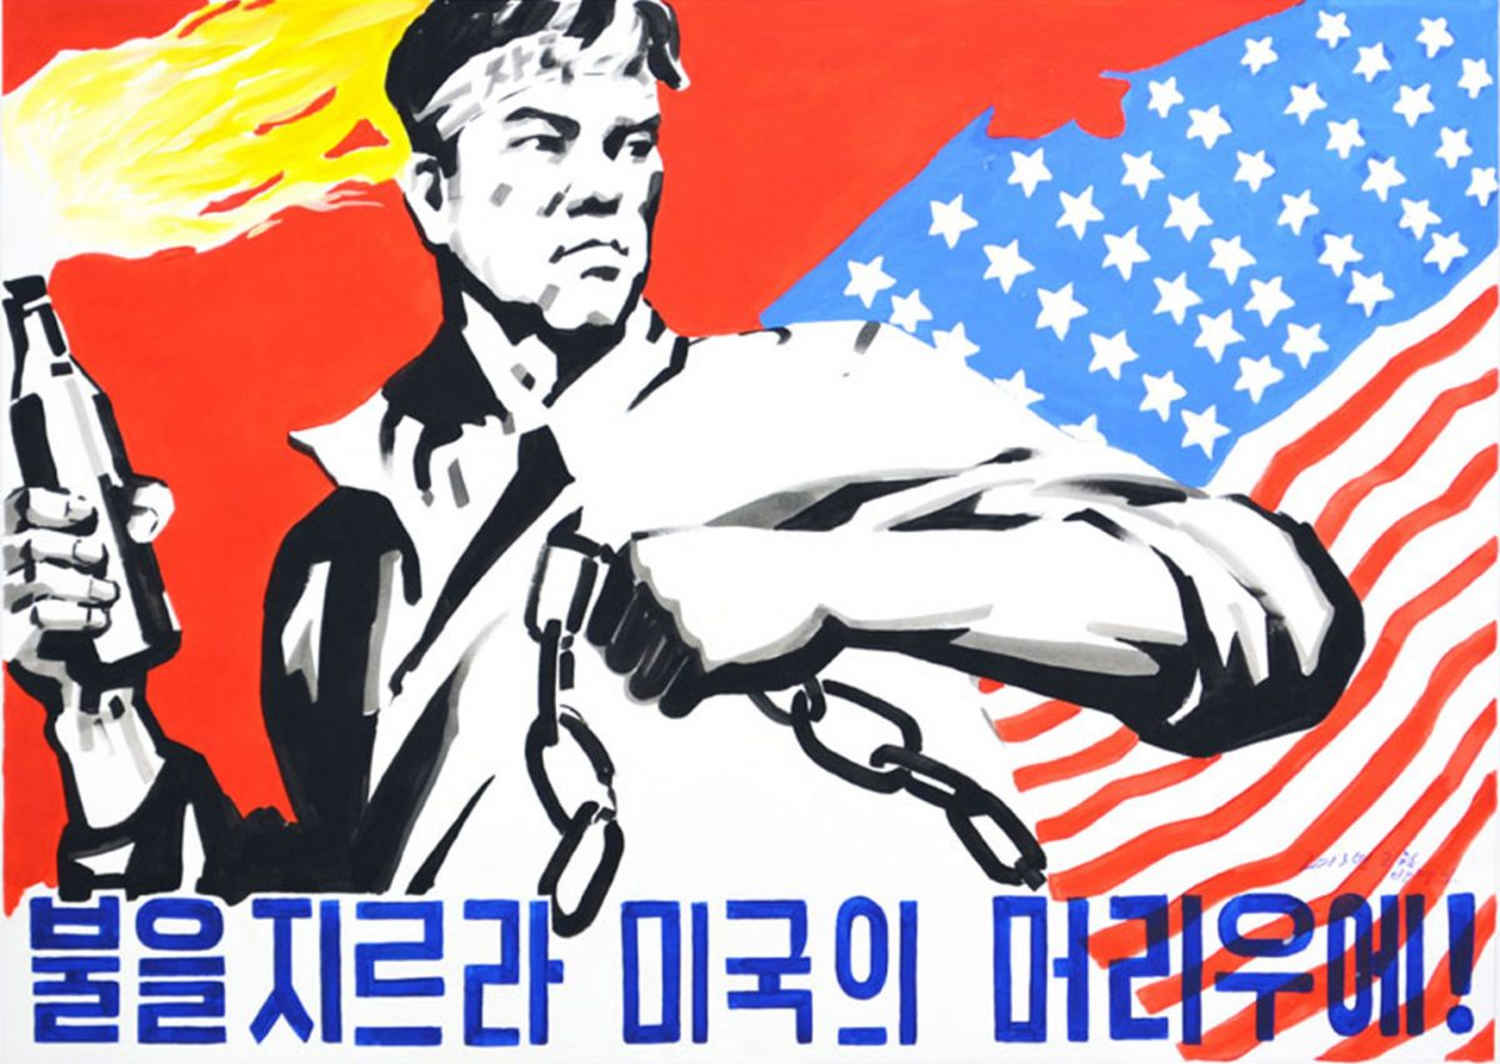 American Imperialists, Do Not Be Reckless in Using Violence!